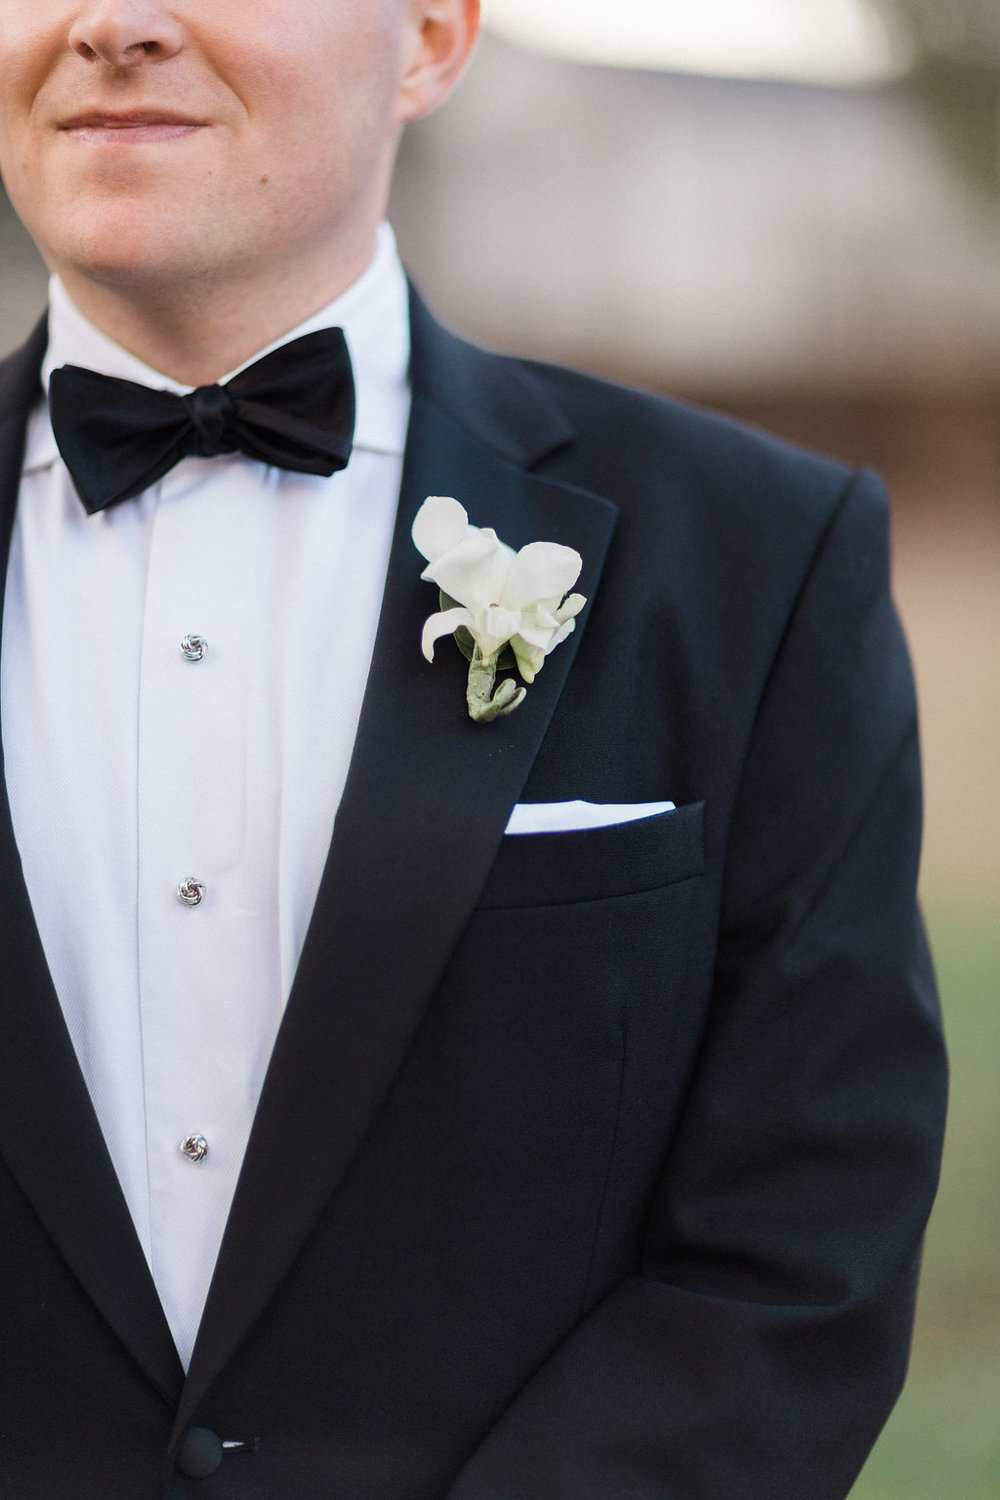 Groom orchid boutonniere